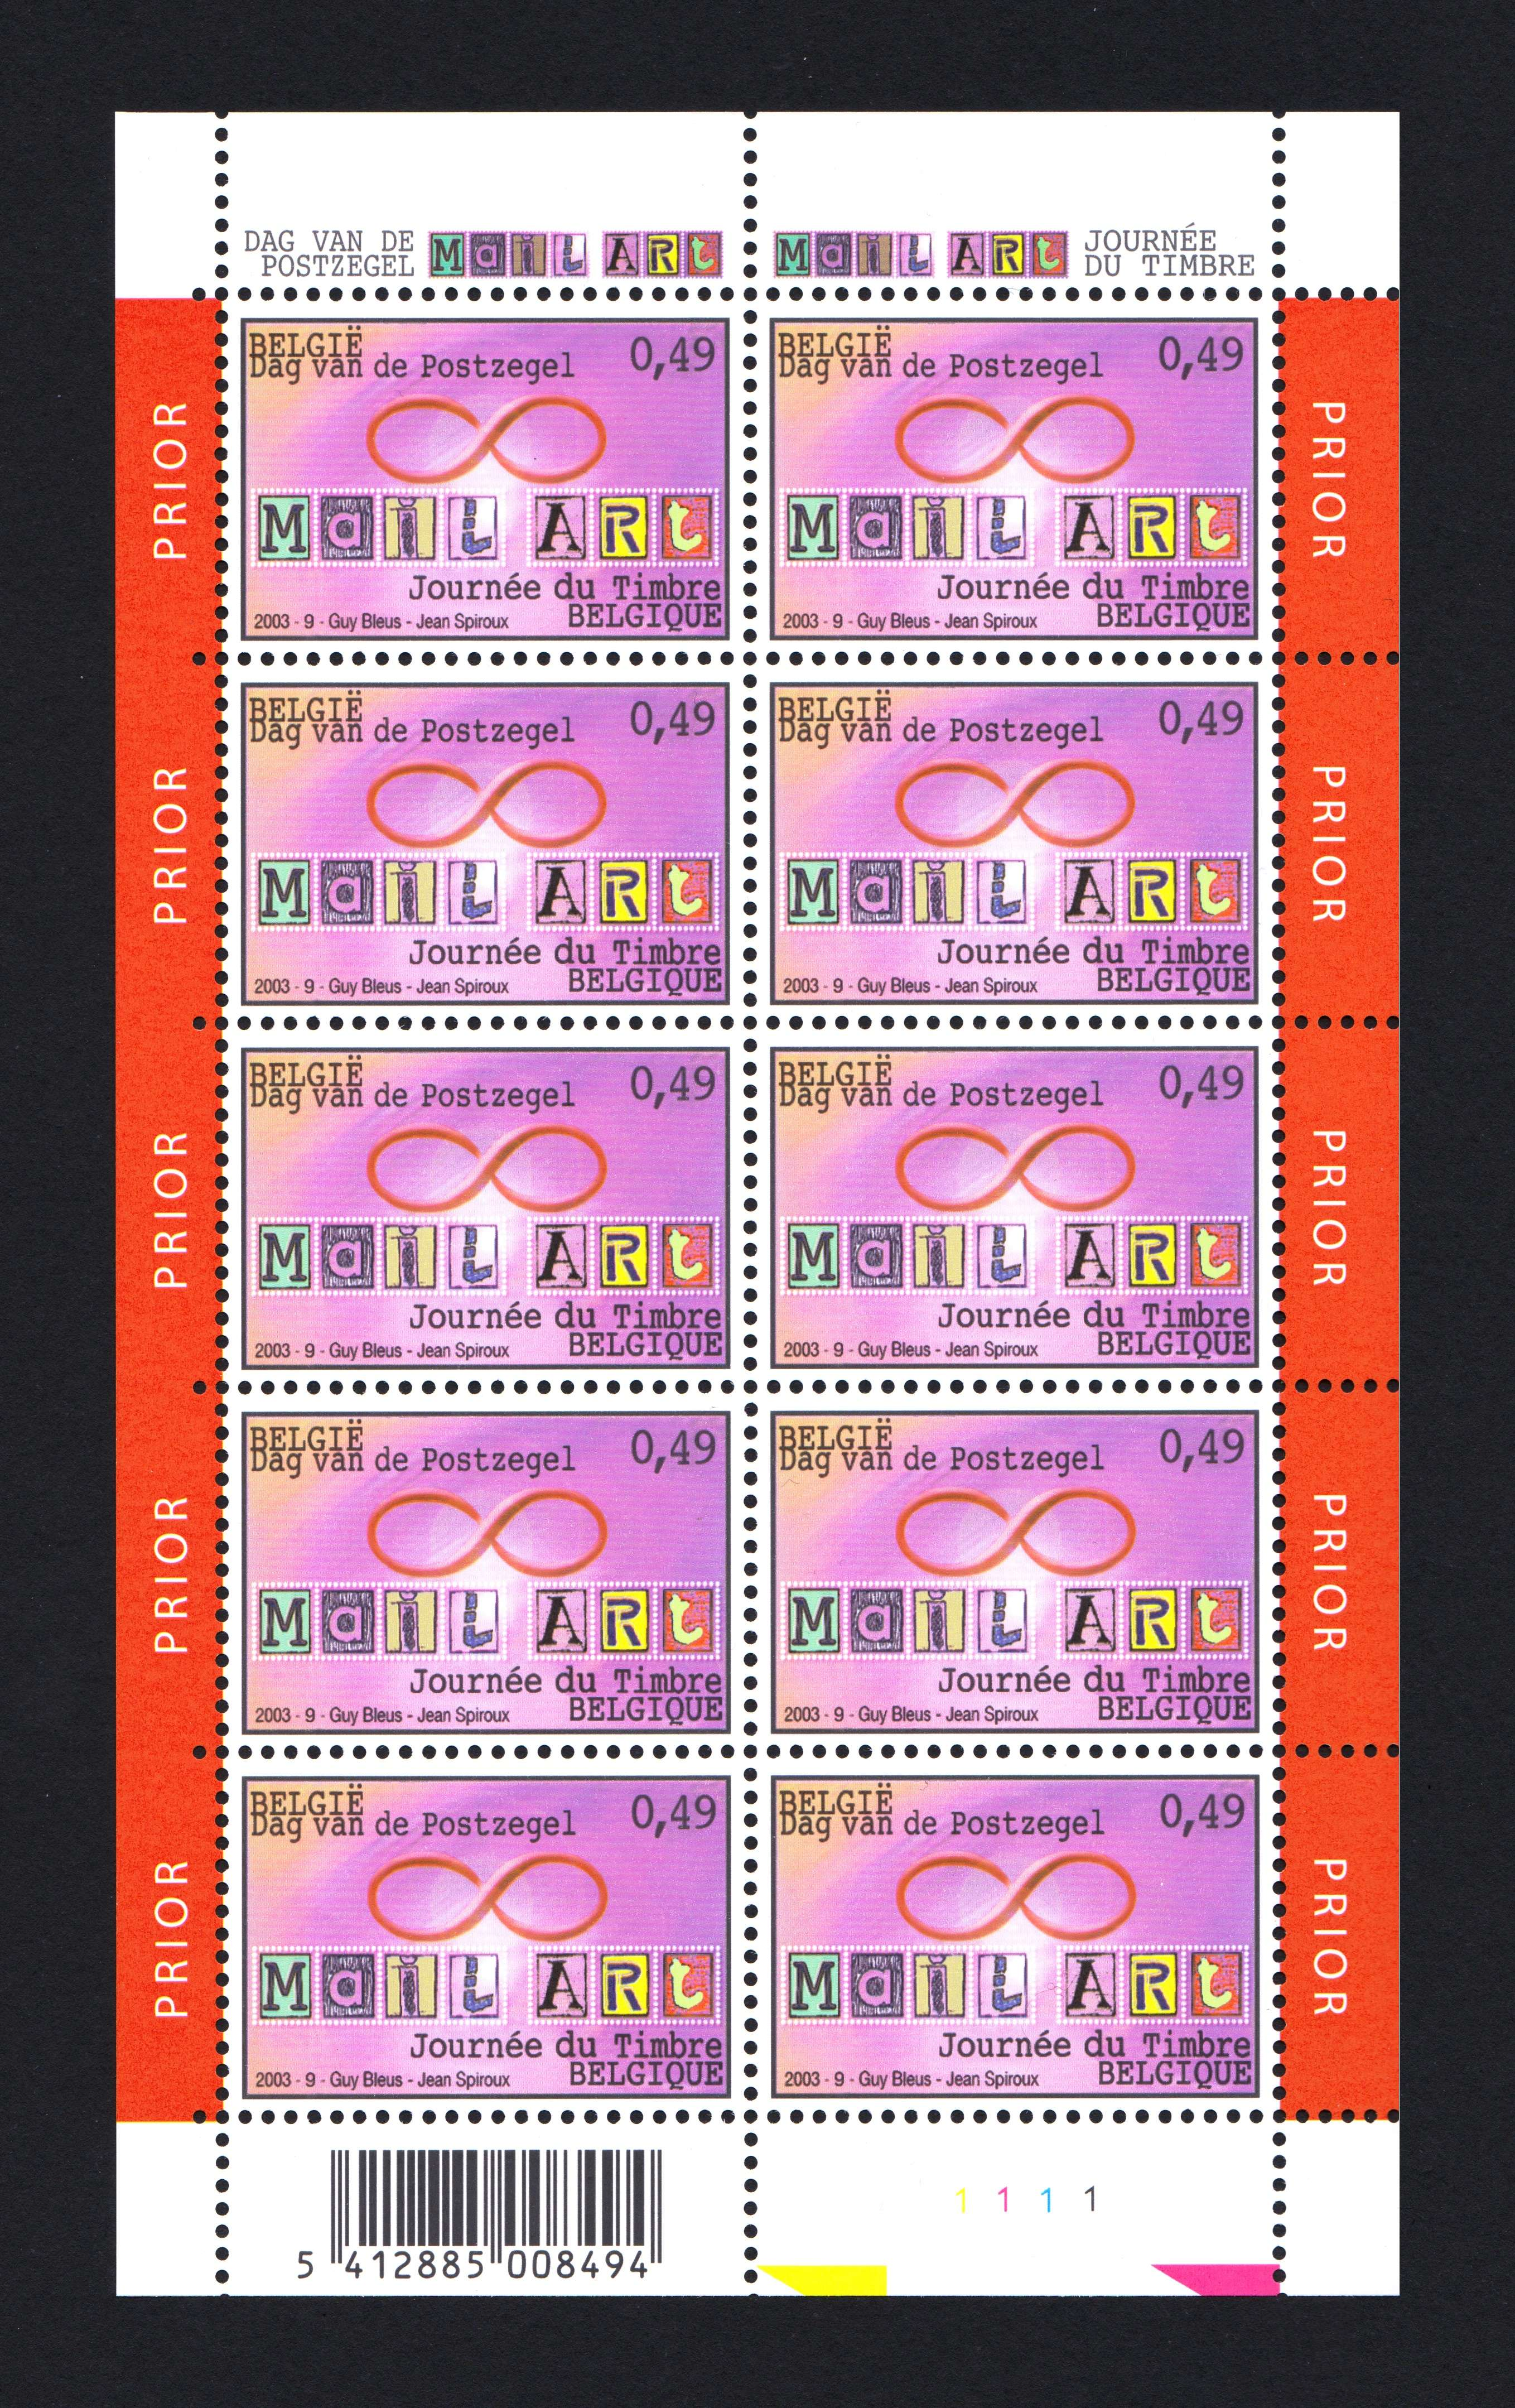 Mail Art Stamps by Guy Bleus Jean Spiroux 2003